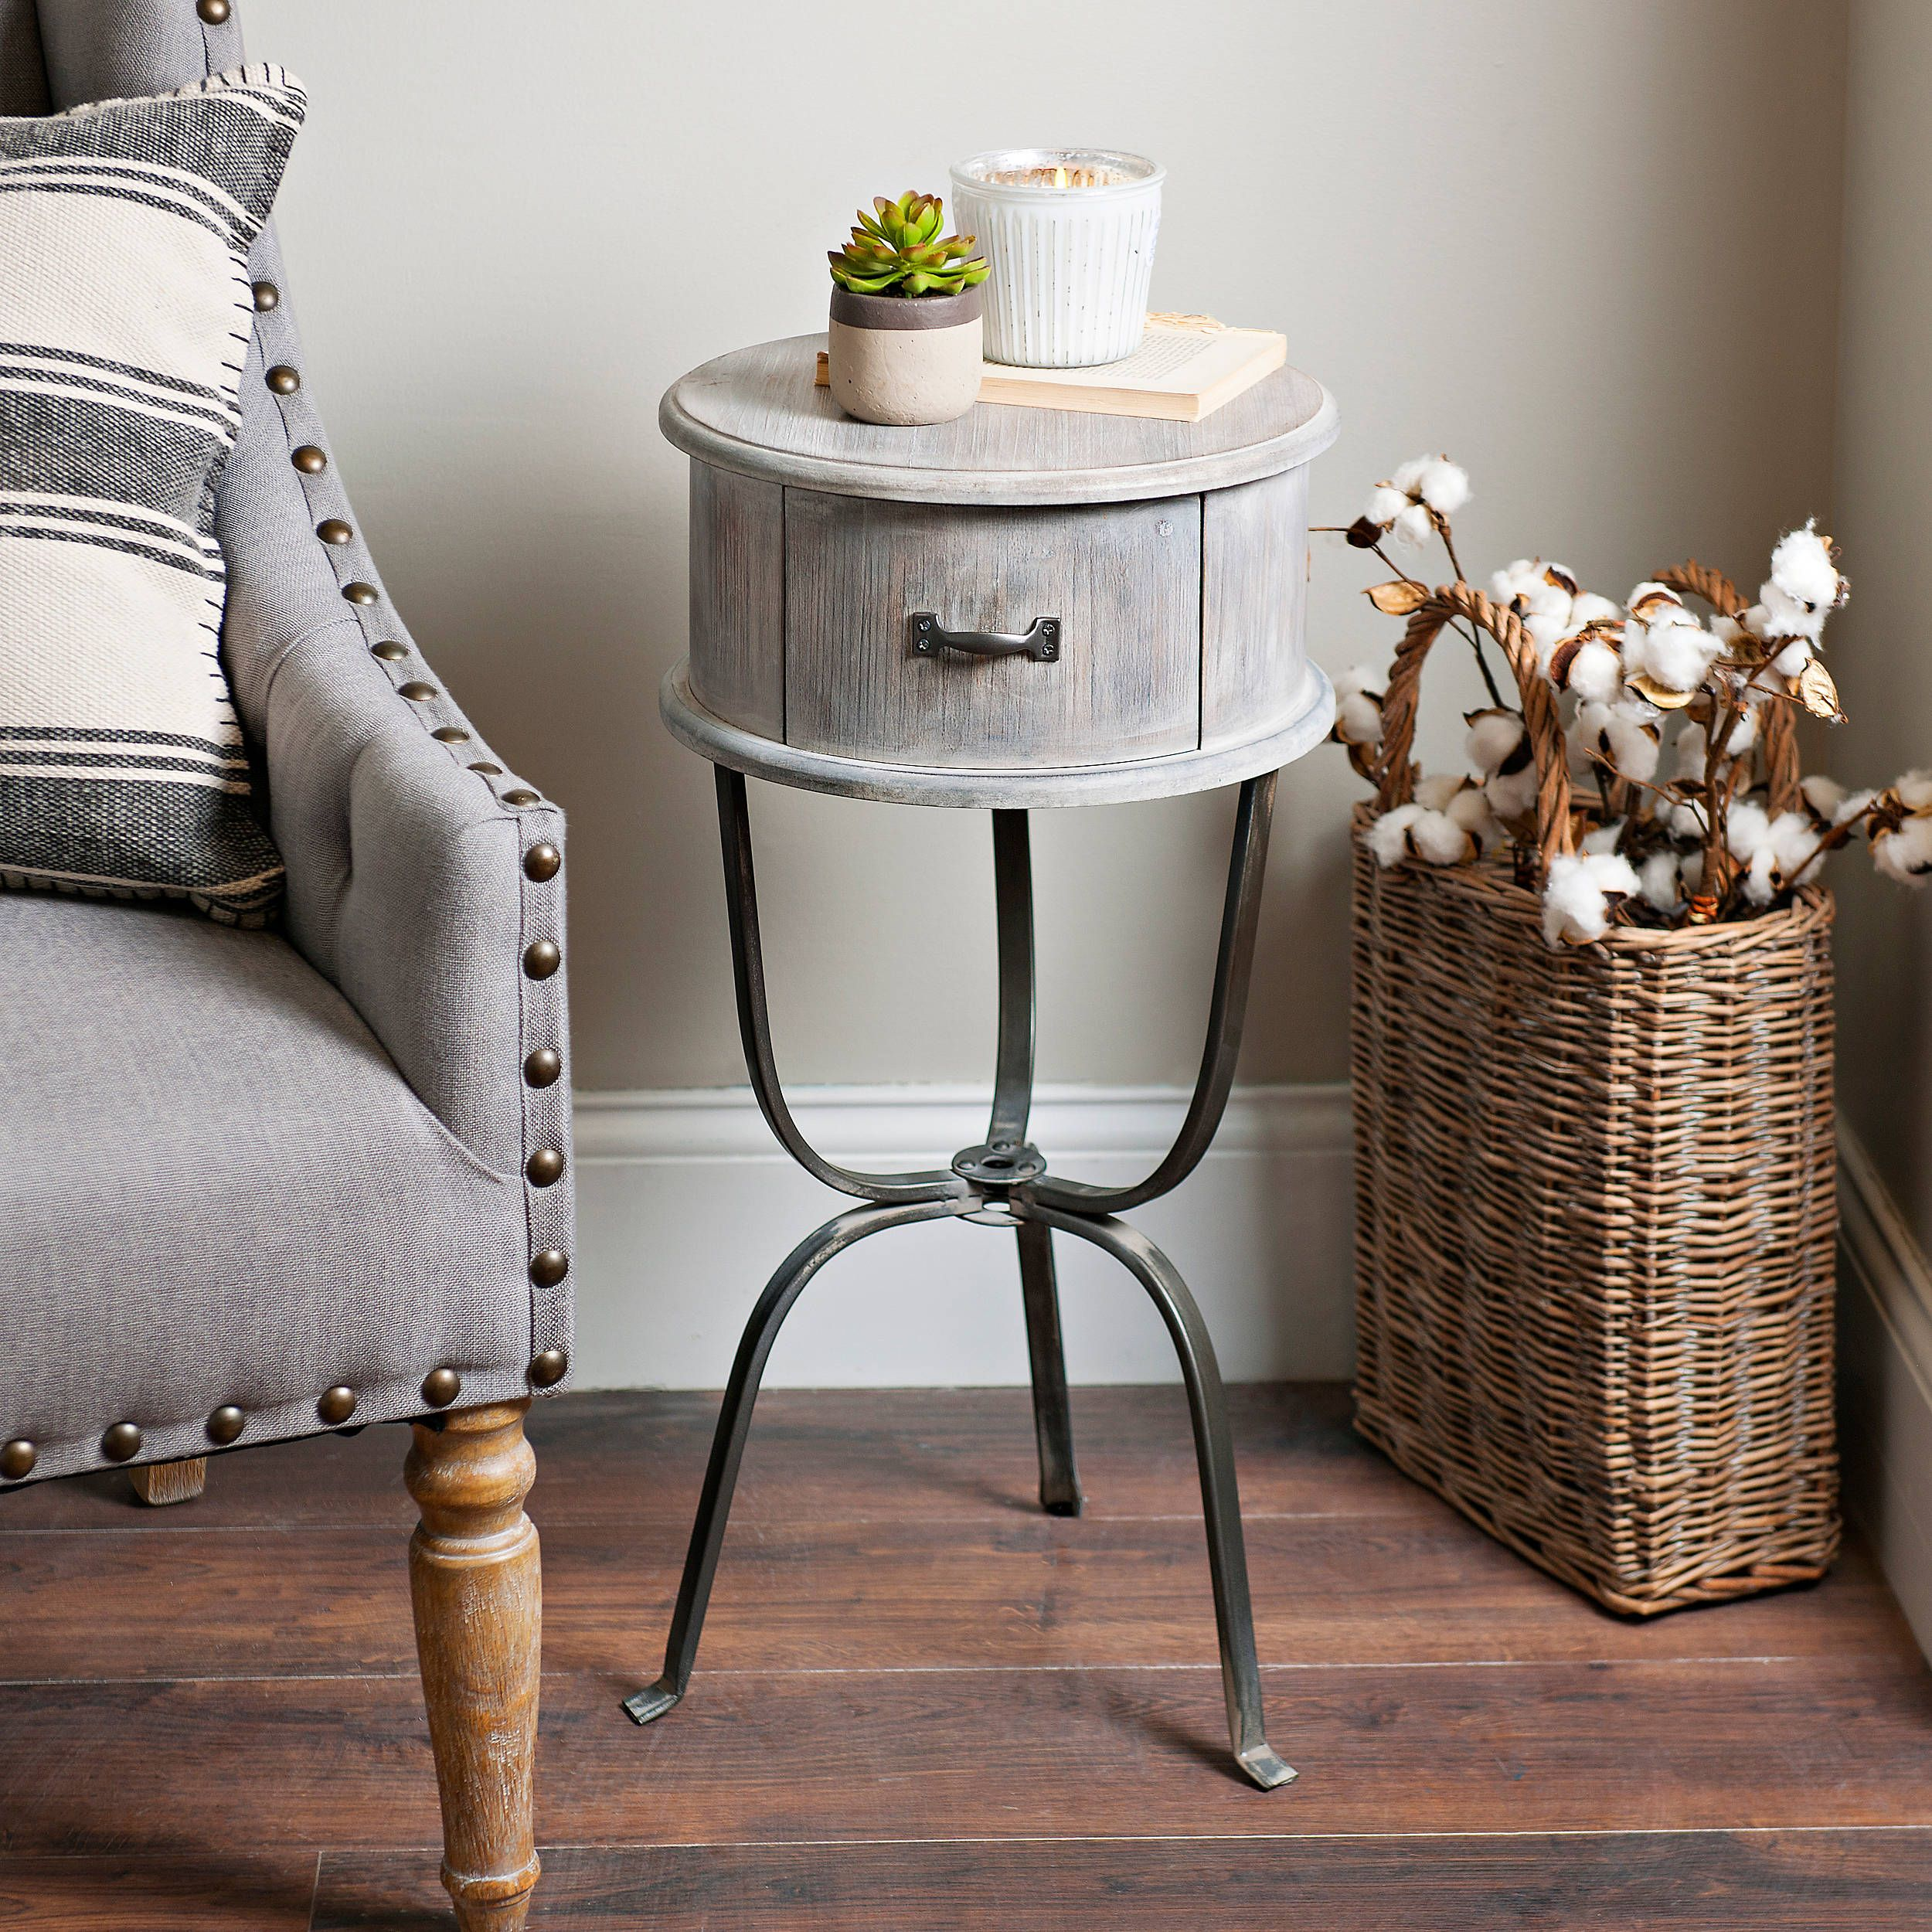 10 Stunning Round End Table For Living Room